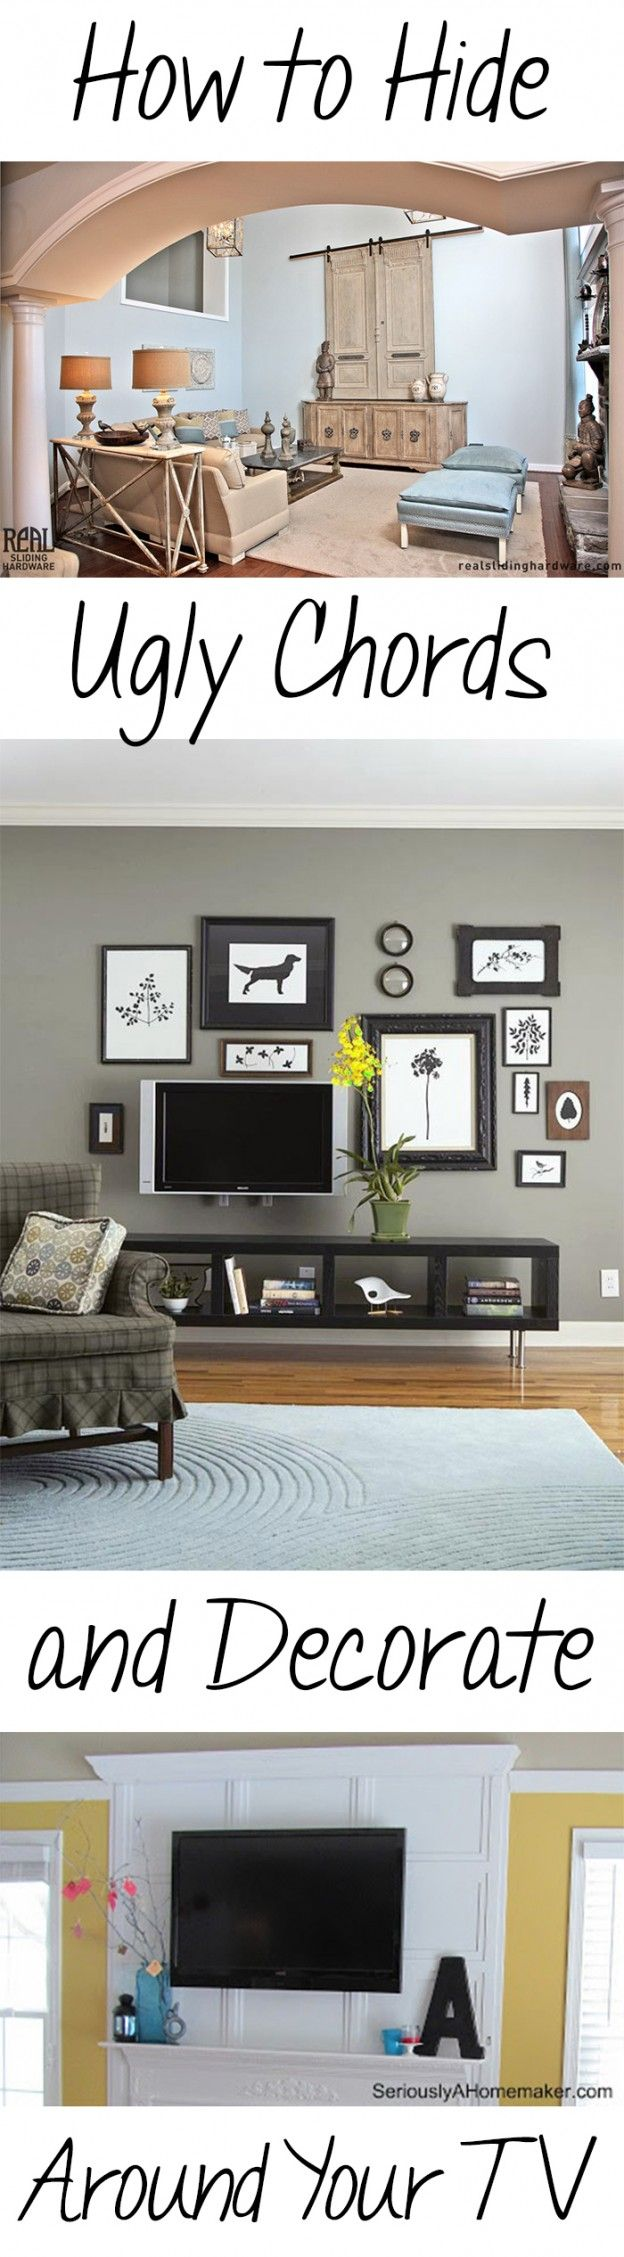 How To Hide Ugly Cords And Decorate Around Your Tv